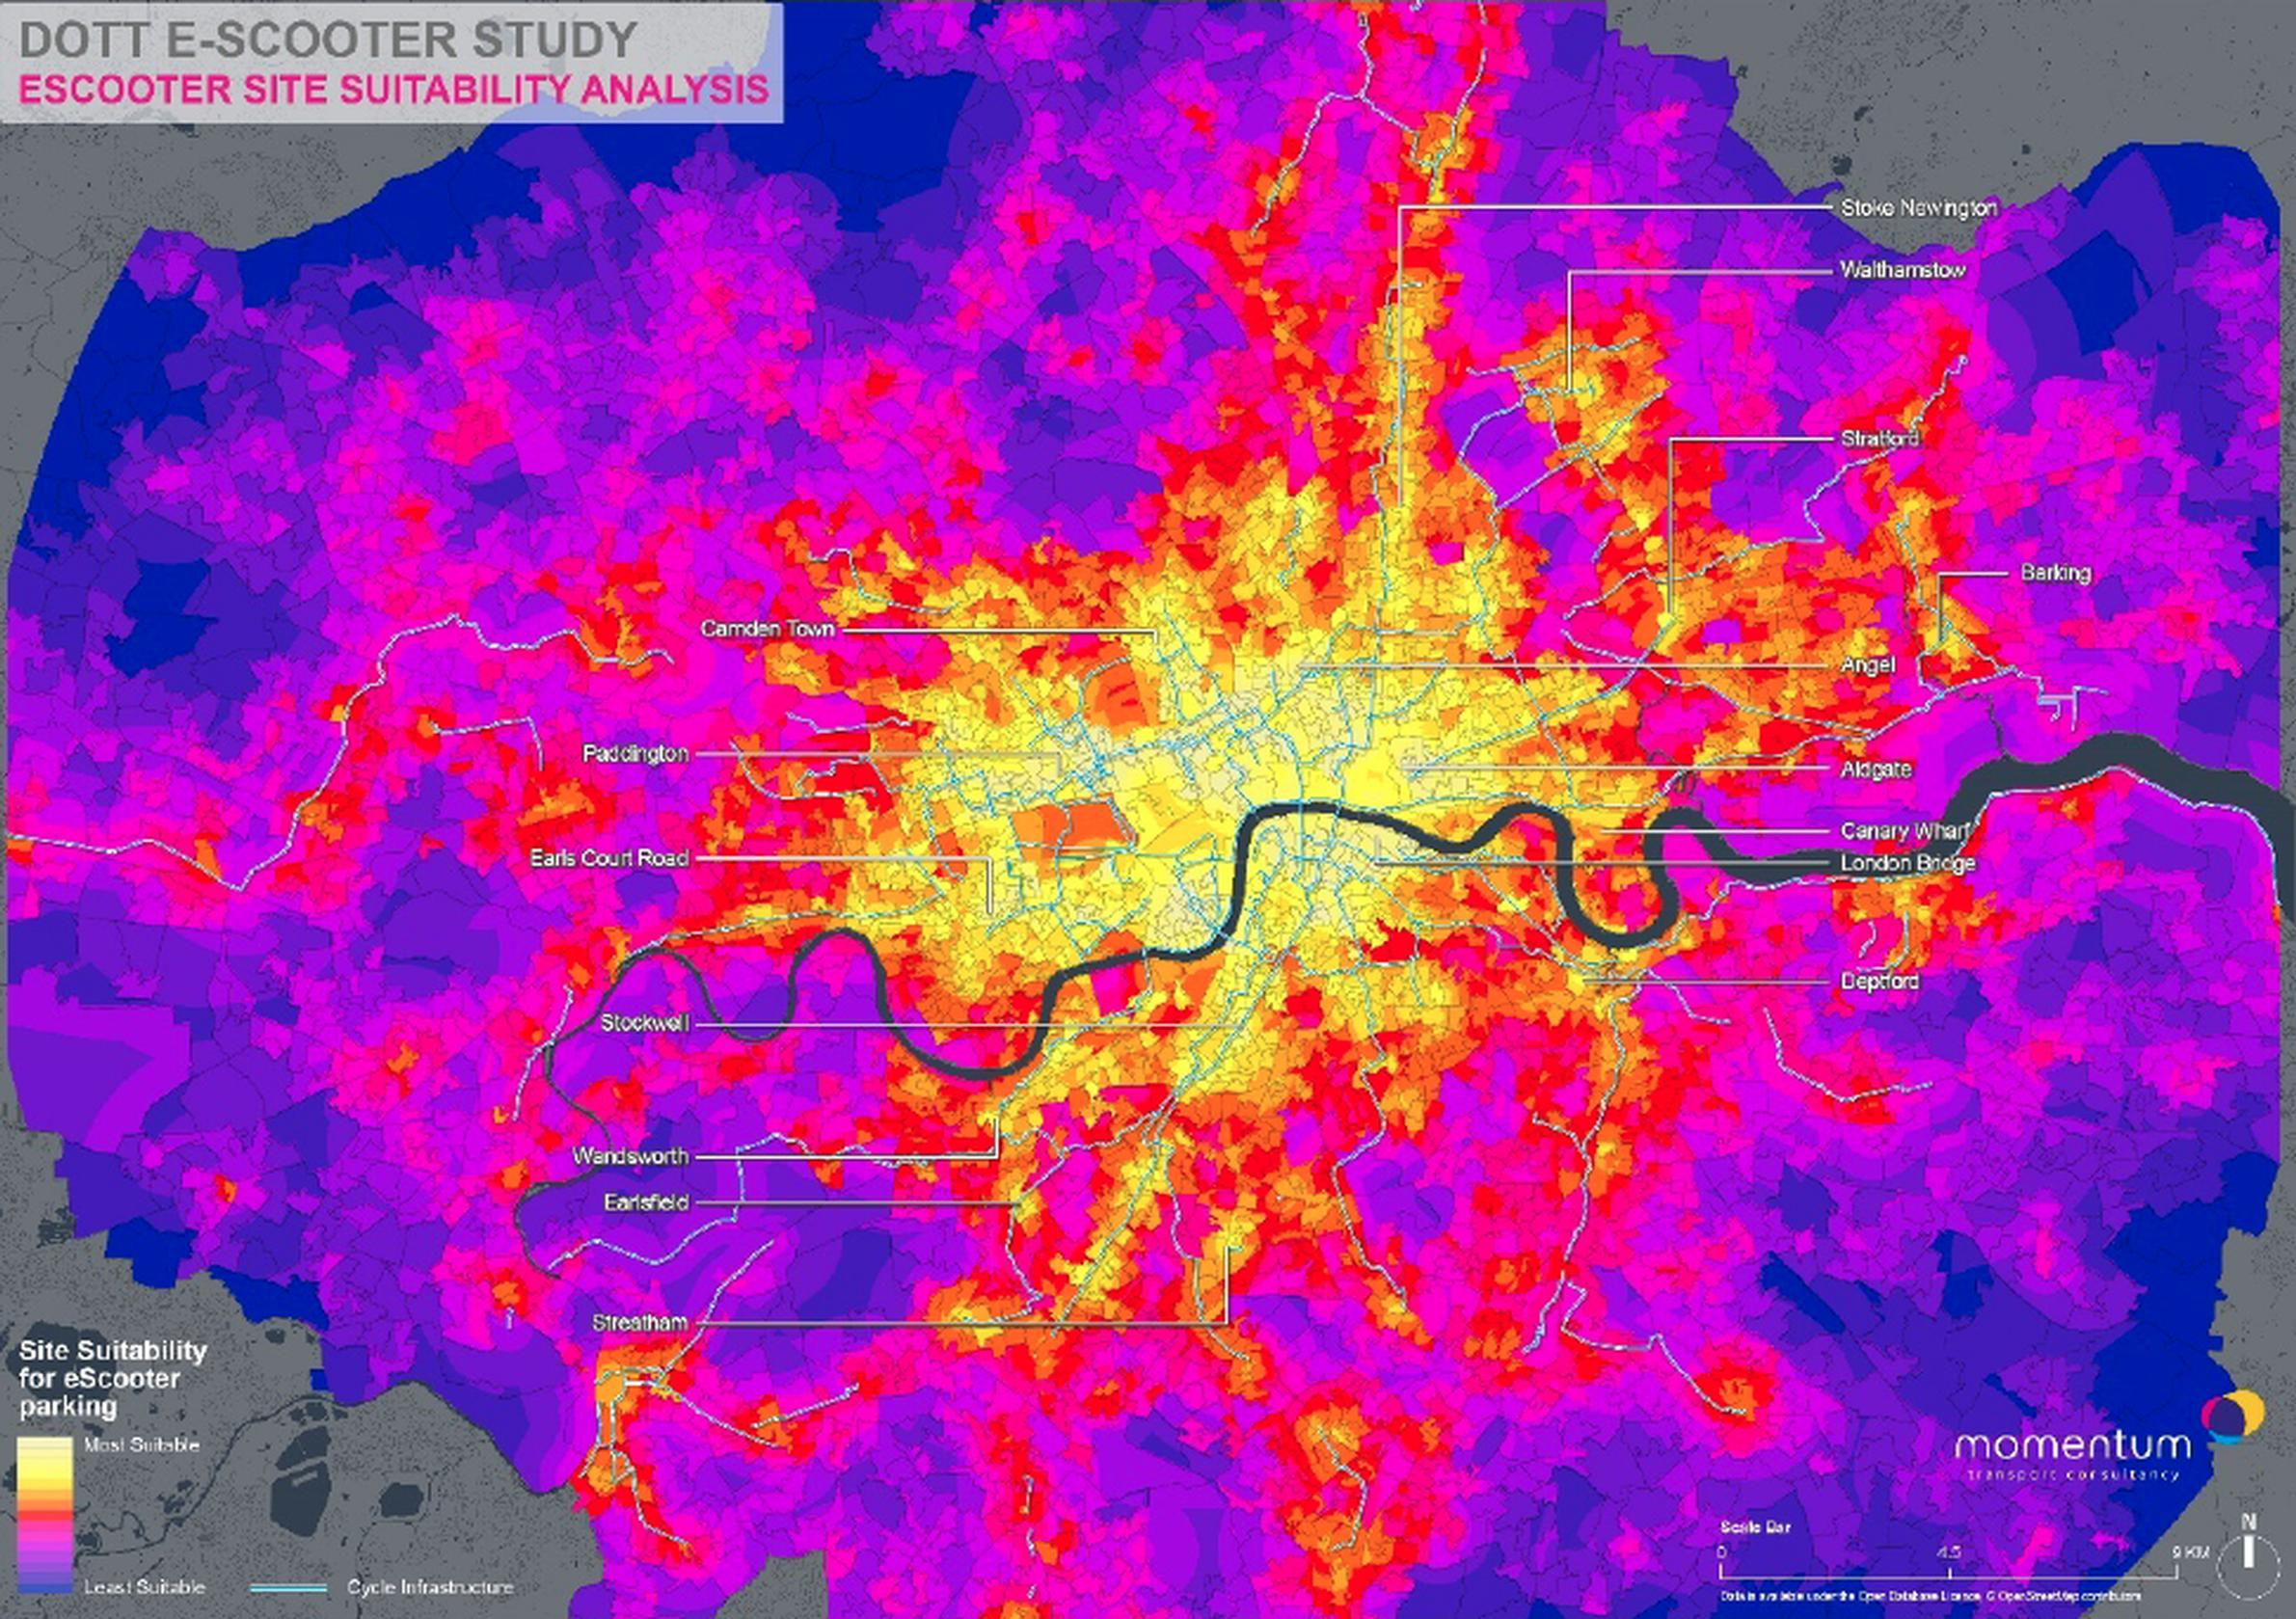 The Dott study outlines how Paris boosted parking compliance to 97% – and how pairing e-scooters with public transport would reach 98% of inner London